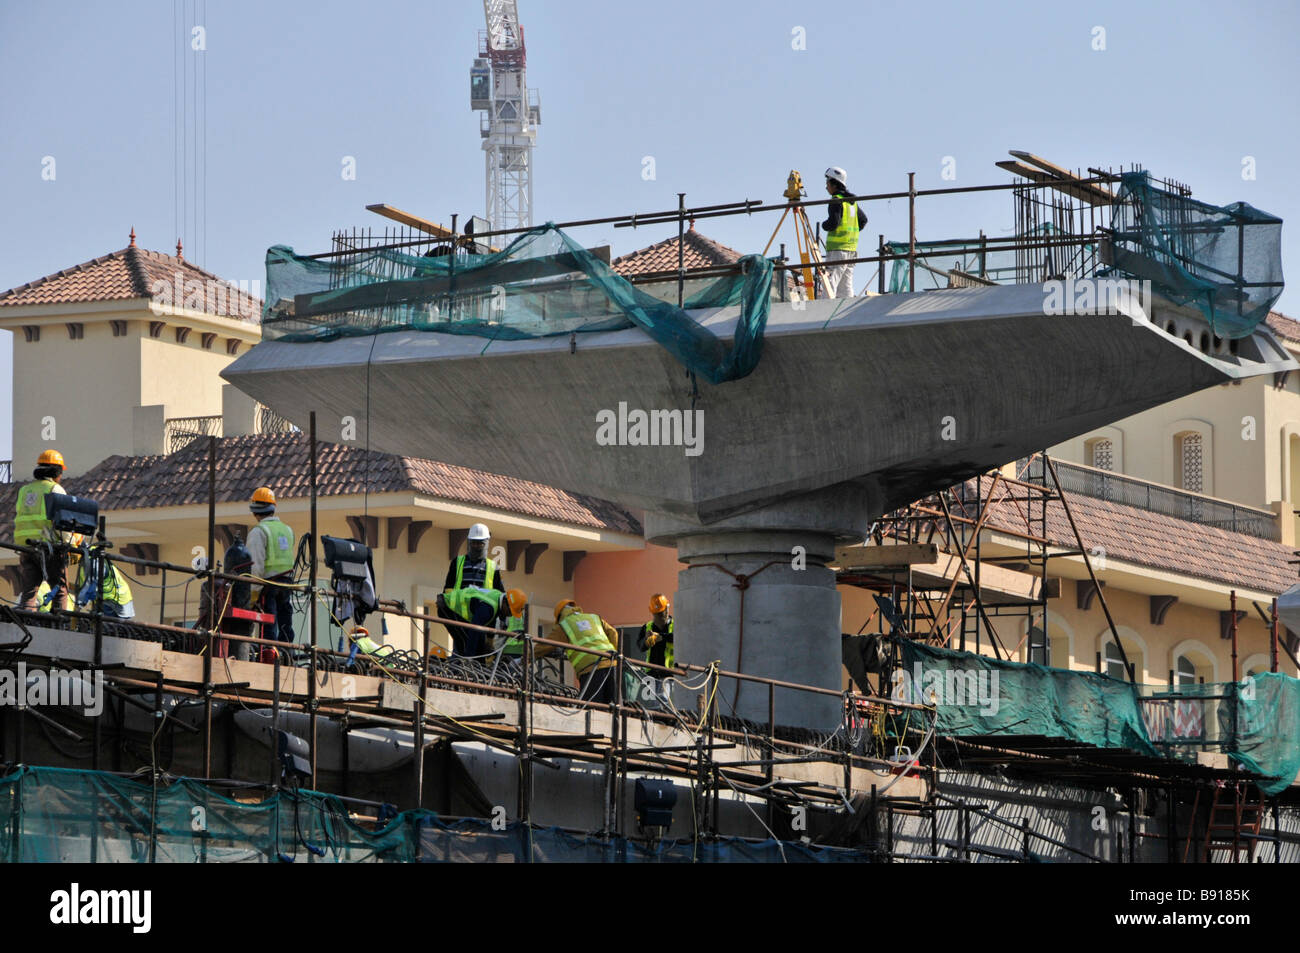 Dubai Metro construction of overhead bridges and viaducts - Stock Image